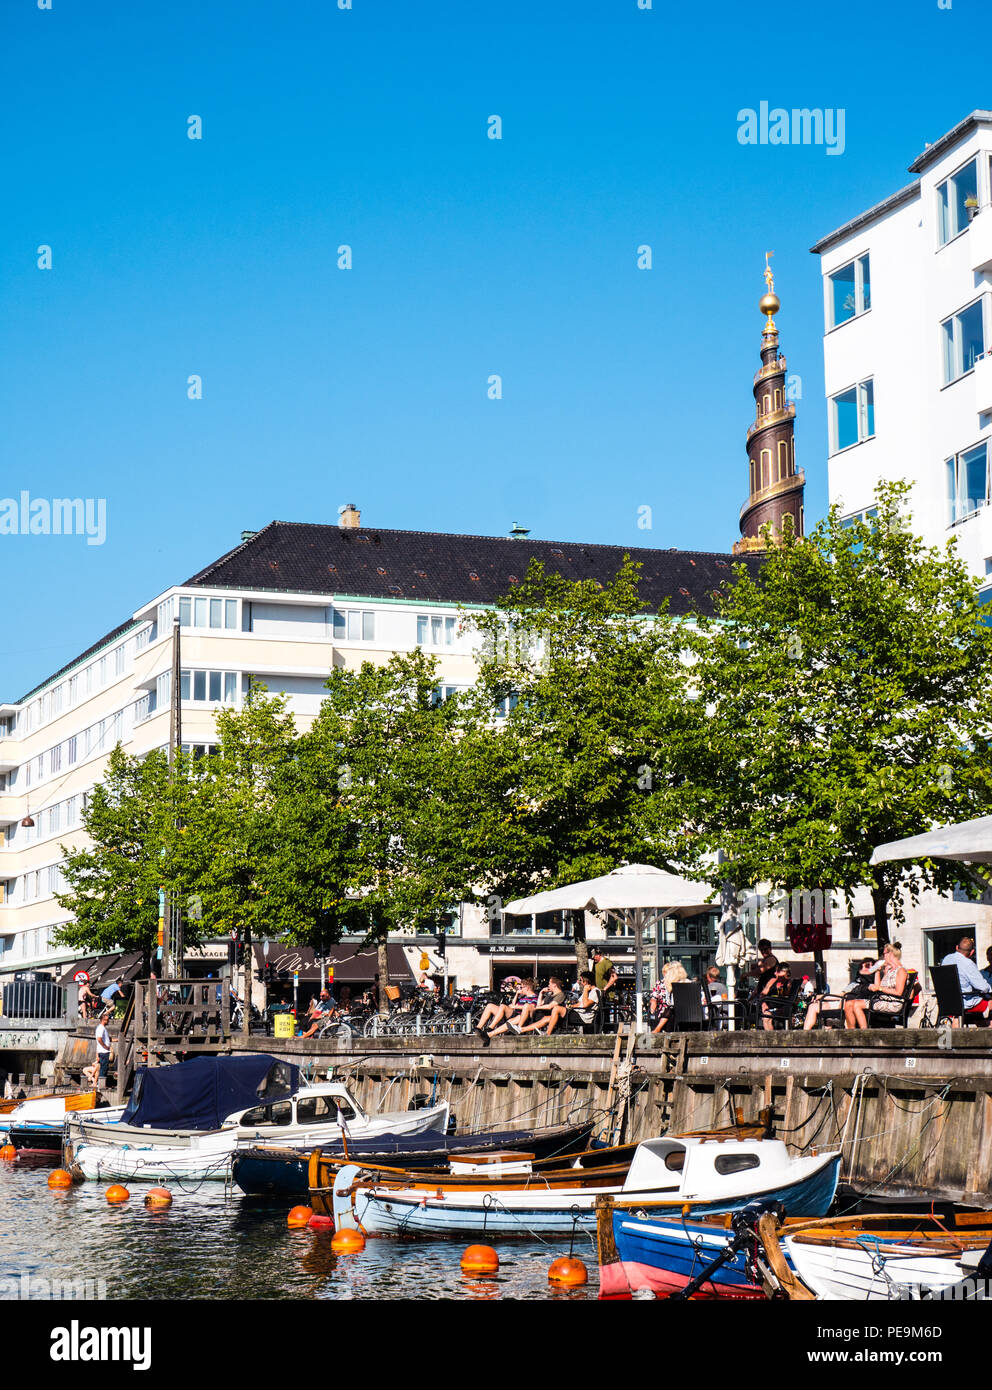 People Relaxing, Summer Time, Canals, Copenhagen, Zealand, Denmark, Europe. - Stock Image